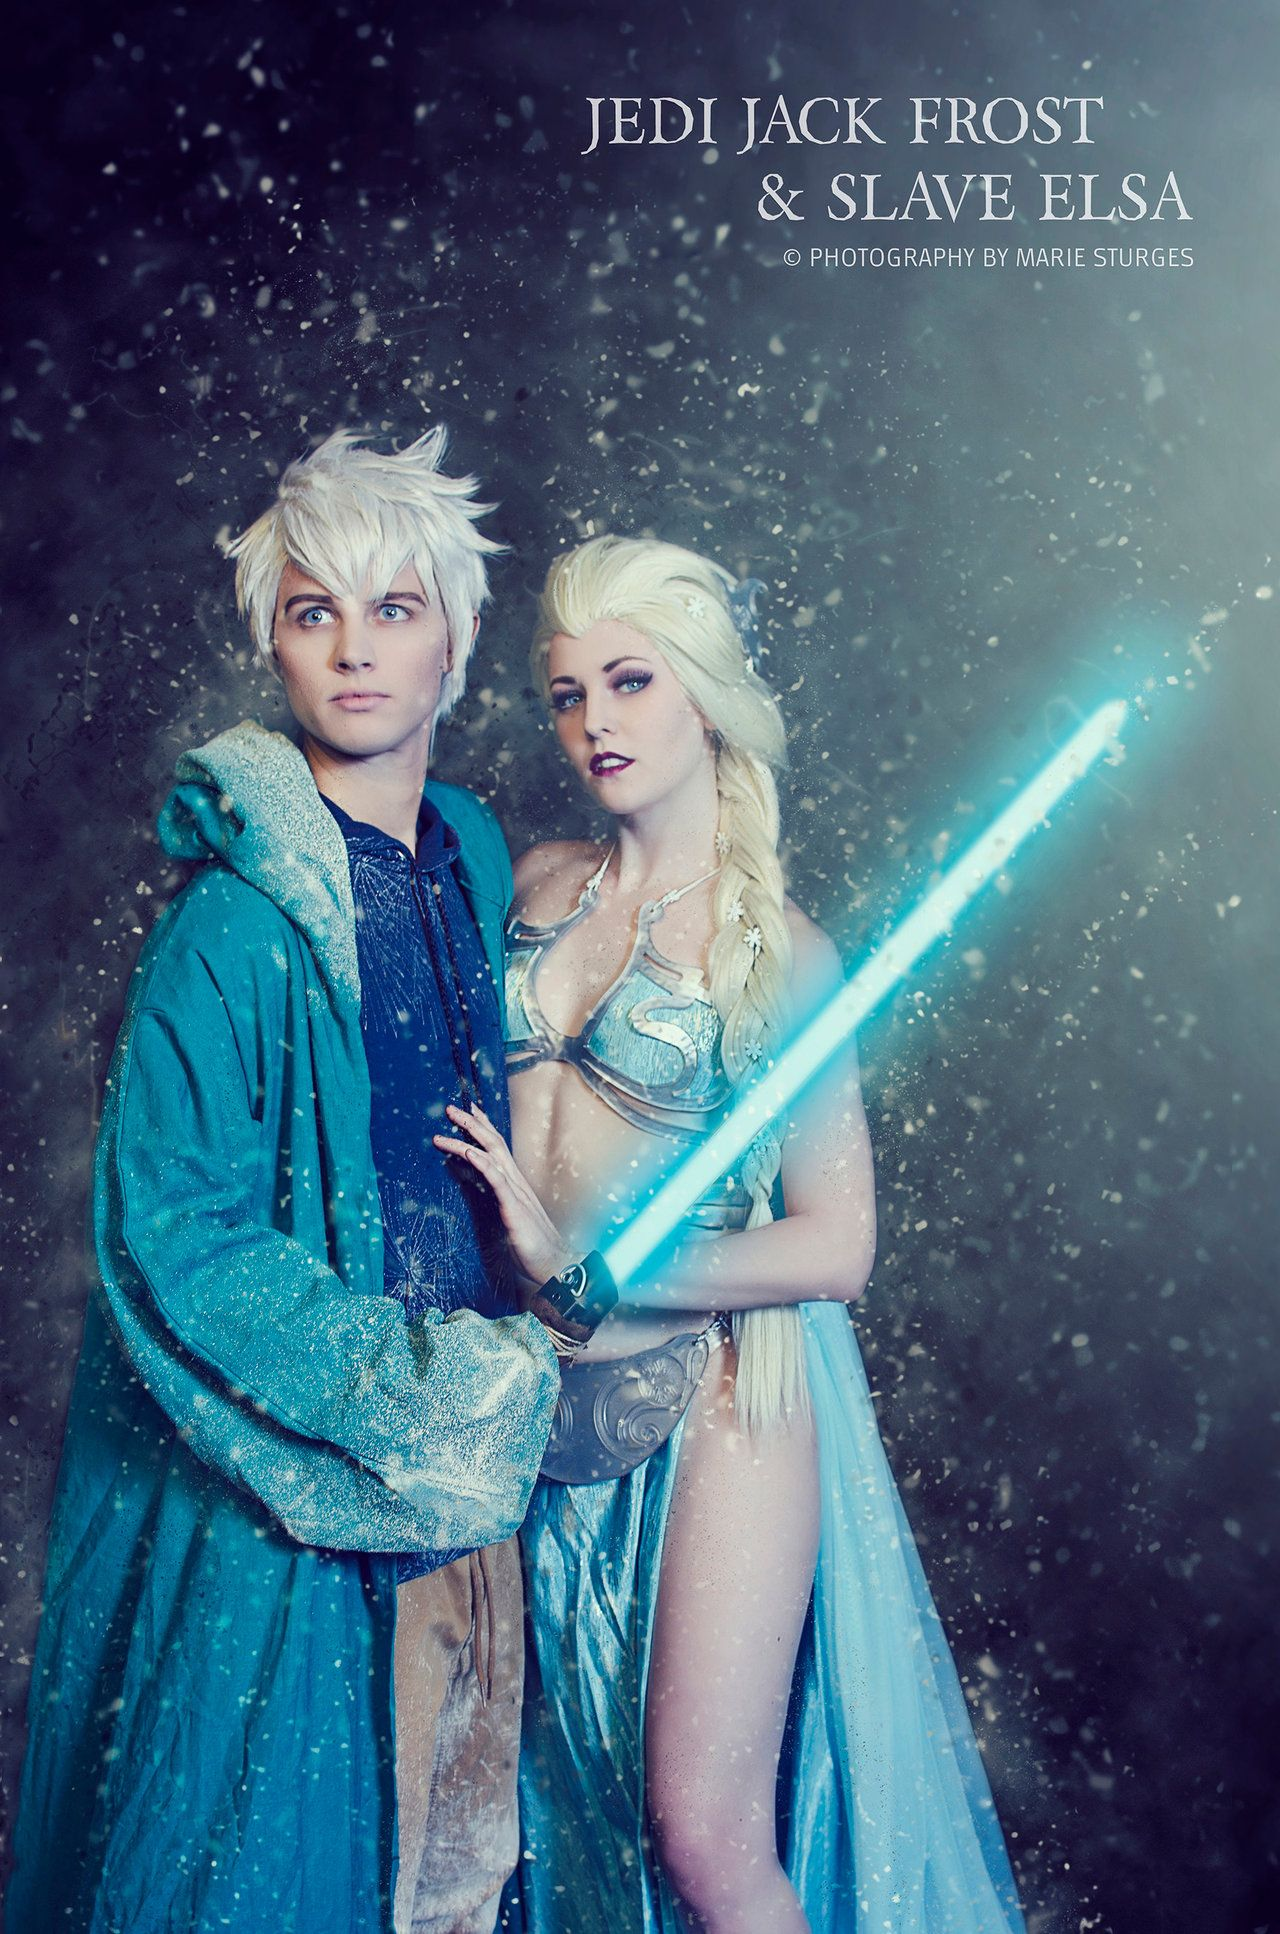 bb3d2b2f33371 Jedi Jack Frost and Slave Elsa by mariesturges.deviantart.com on   DeviantArt        I have a new hero.